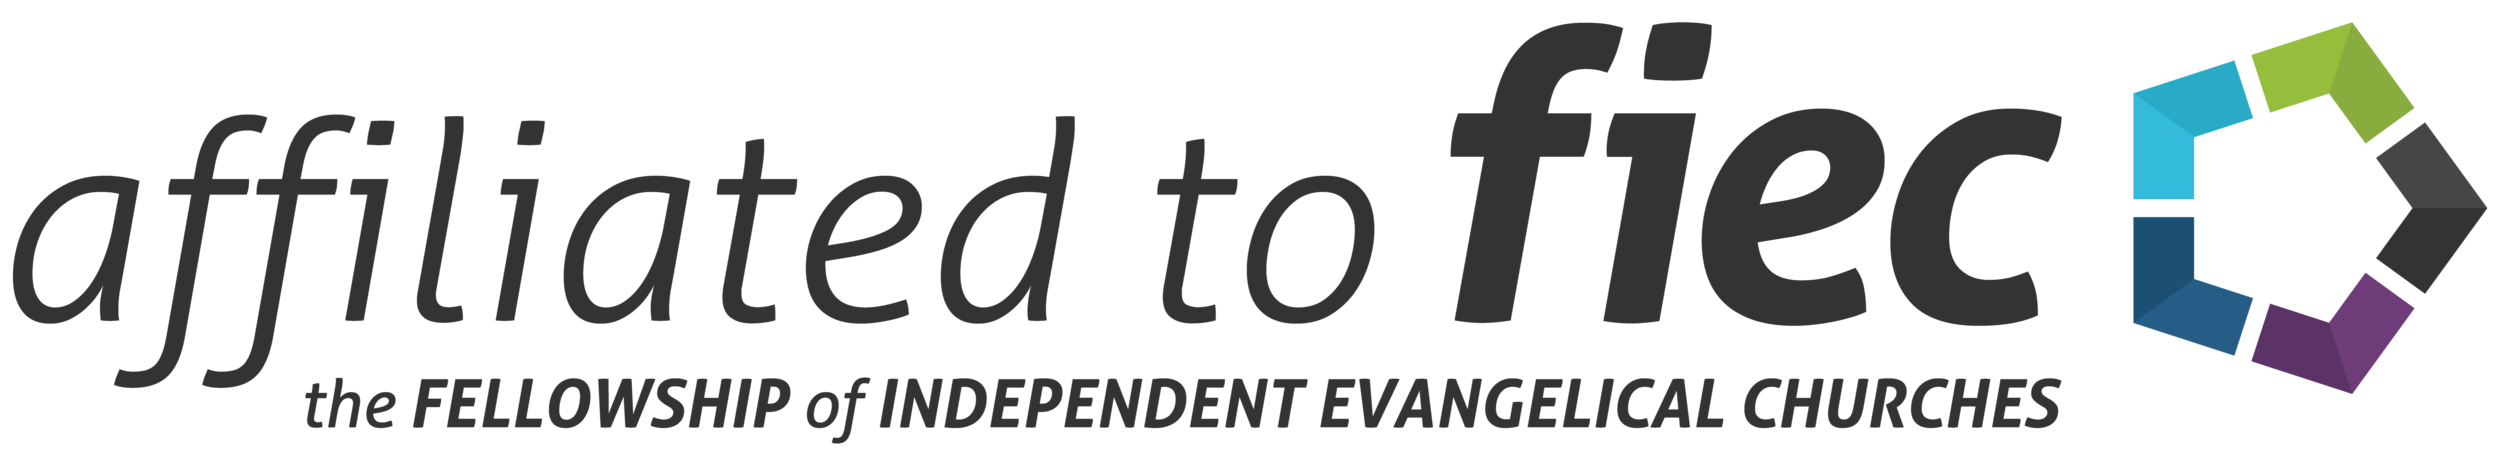 affiliated-to-FIEC-logo-large.png